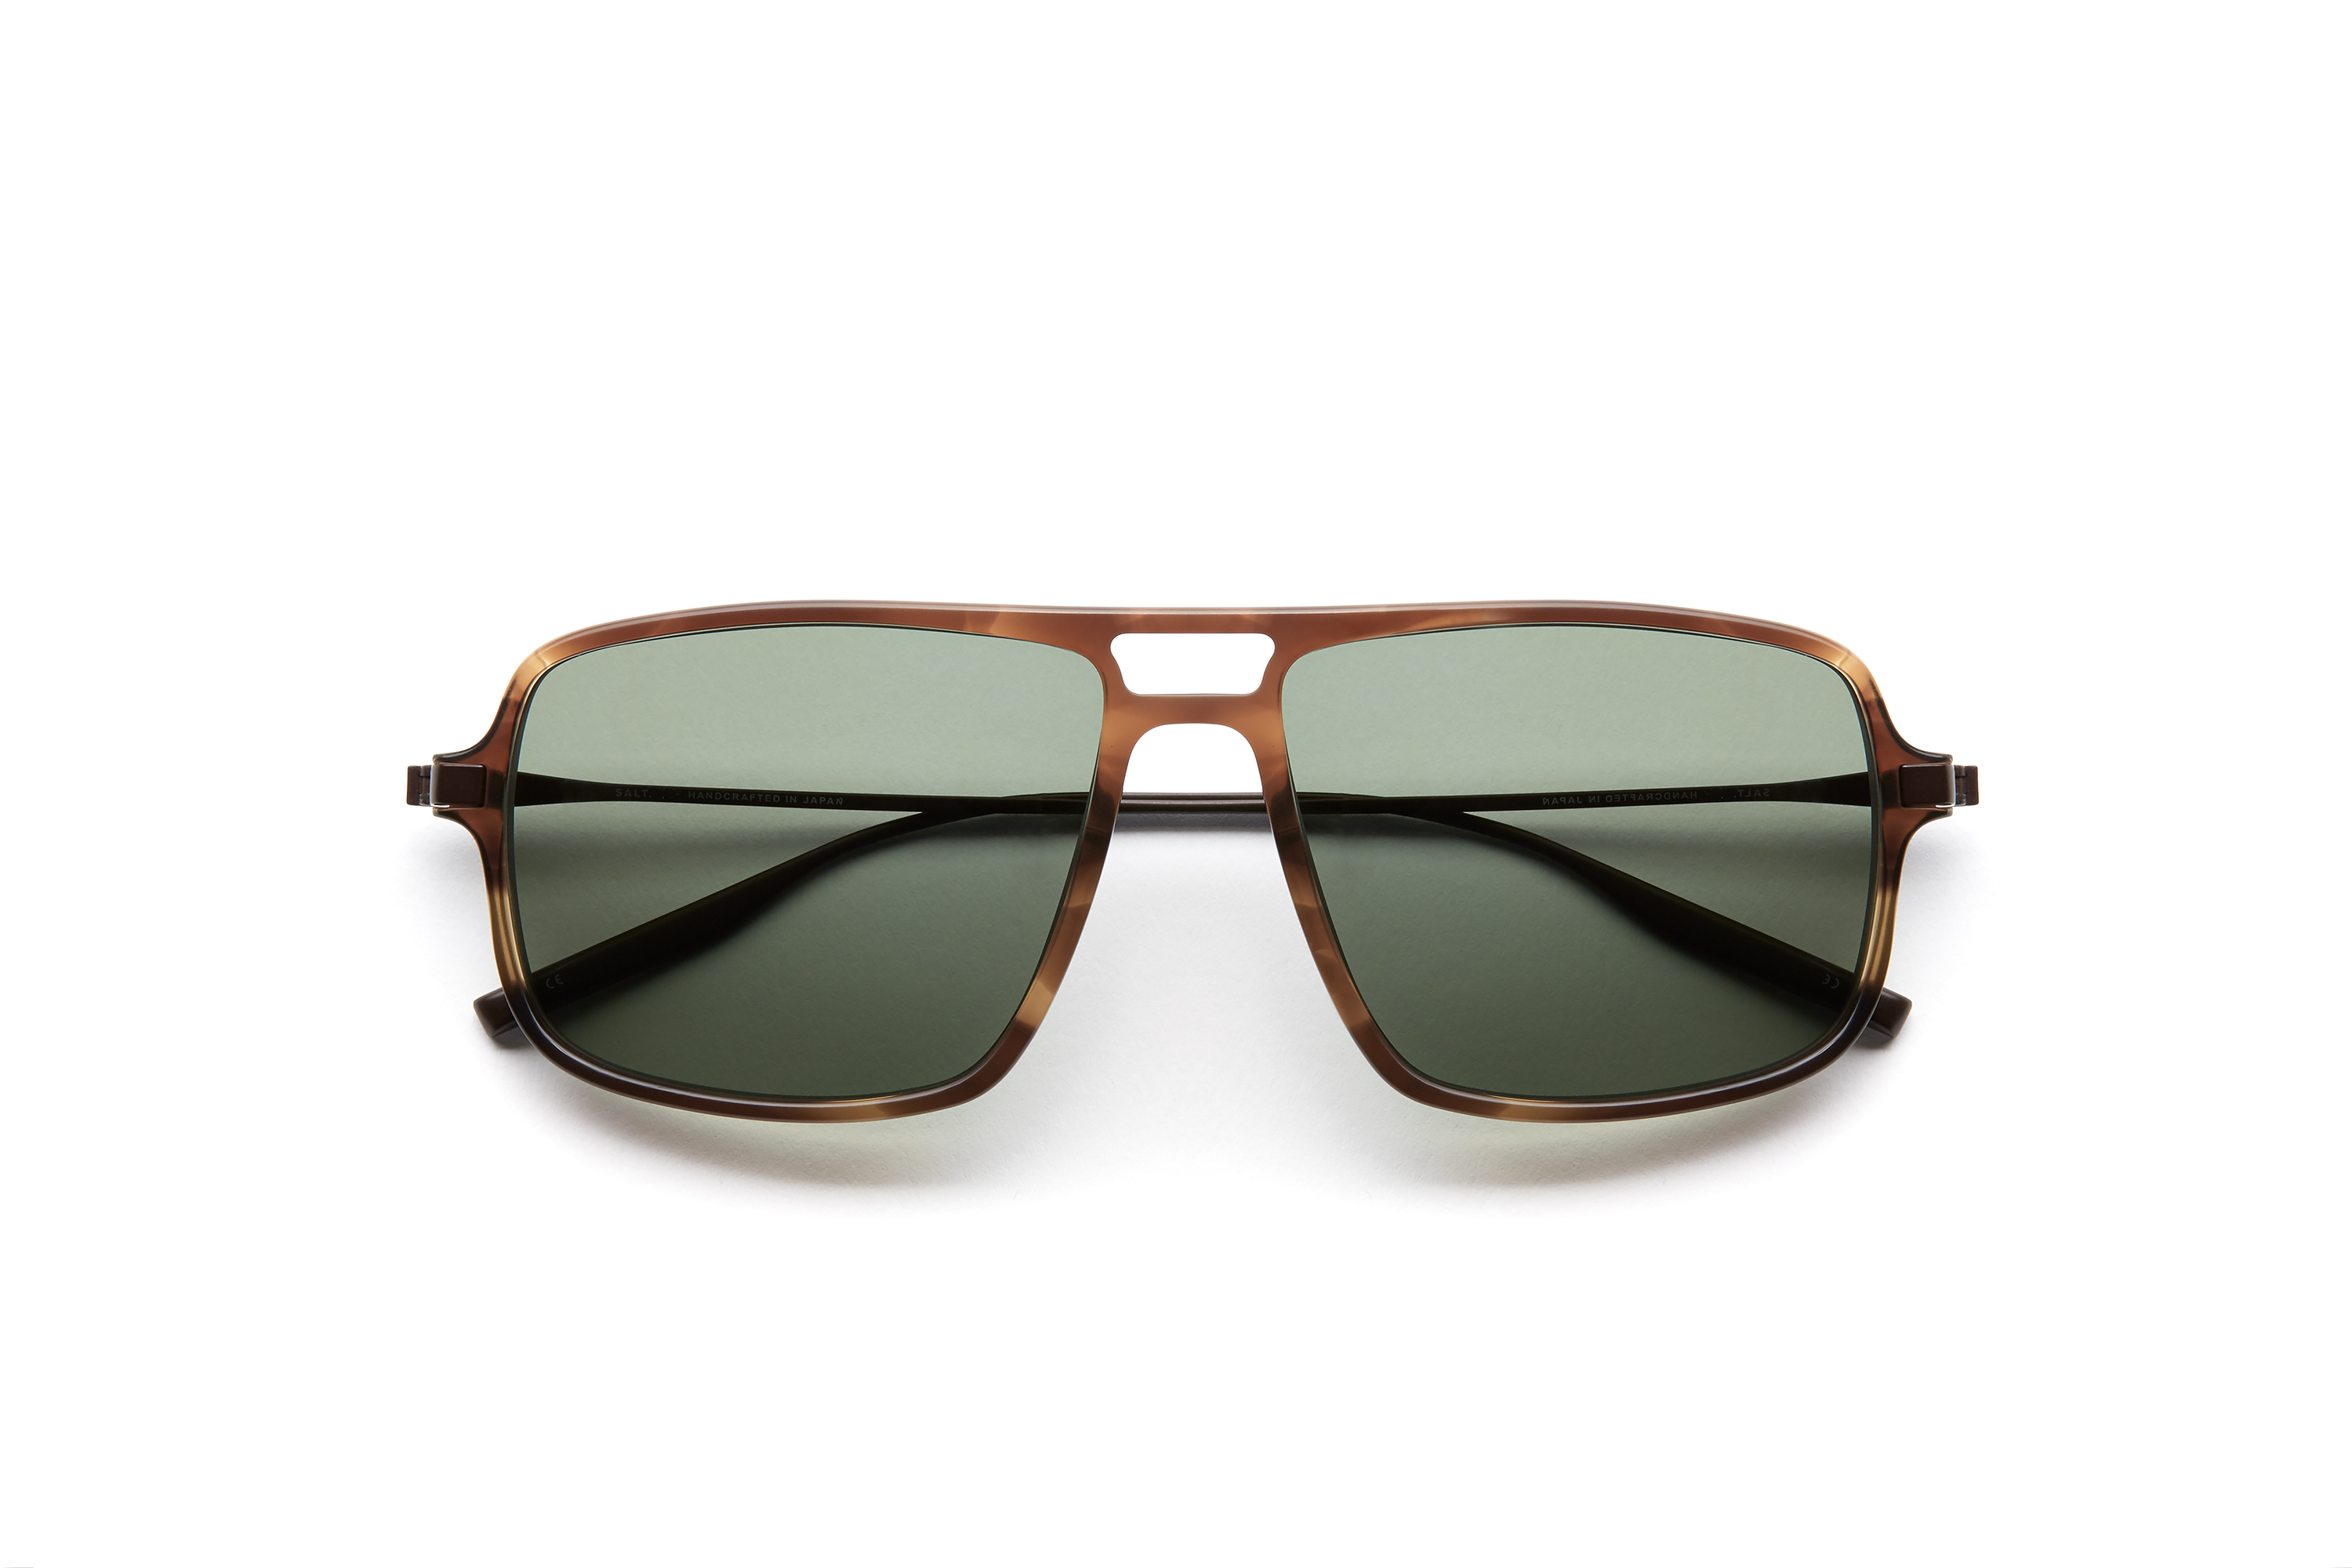 SALT. | FRAME: BURKHART in Matte Mauve Mist/Turkish Coffee, lenses; CR39 G15 Polarized